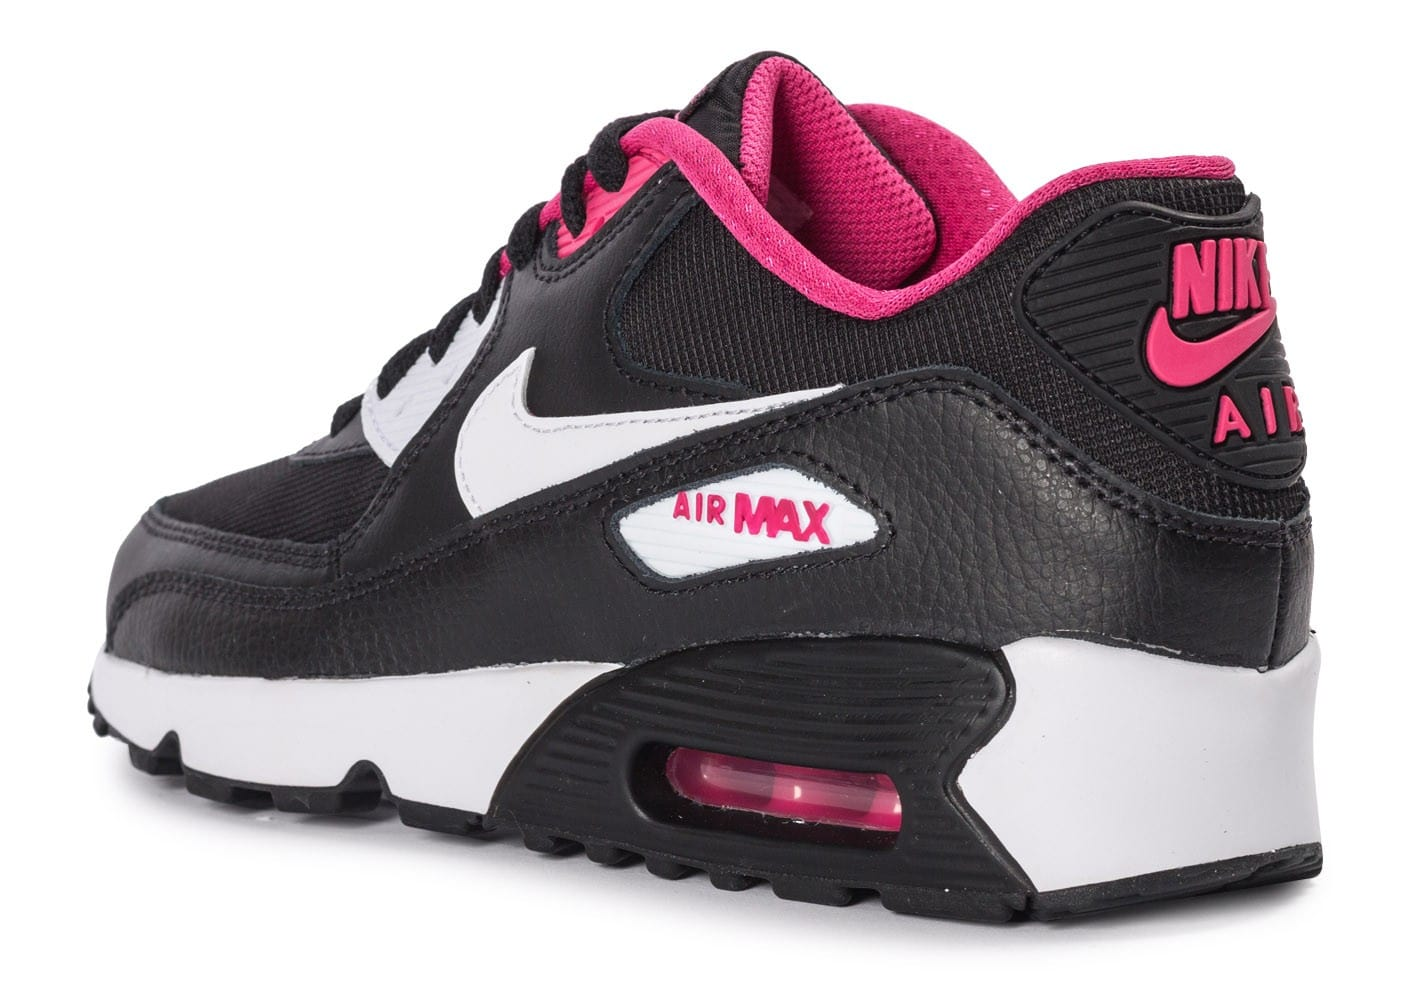 nike air max 90 noir et rose. Black Bedroom Furniture Sets. Home Design Ideas